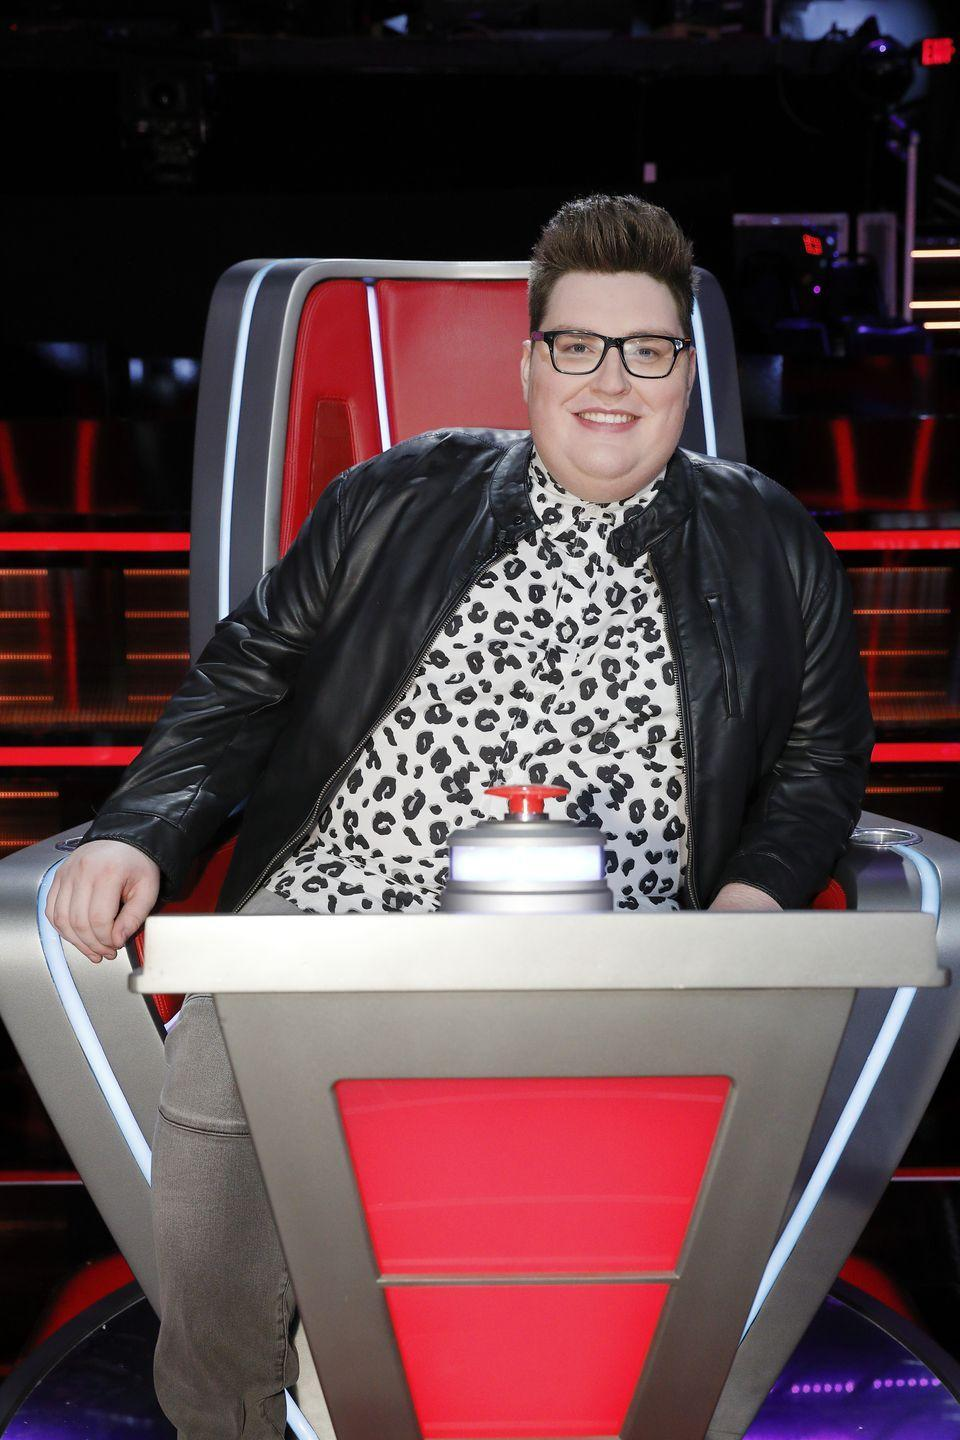 "<p>Jordan Smith won season nine and has been super successful. He was the highest selling person on the show, ever, and that popularity continued when the cameras stopped rolling. He released singles and albums and performed ""You Are So Beautiful"" at the 42nd People's Choice Awards in 2016. In 2018, he announced that he had written ""Ashes"" for the <em>Deadpool 2</em> soundtrack, which was performed by Celine Dion. </p>"